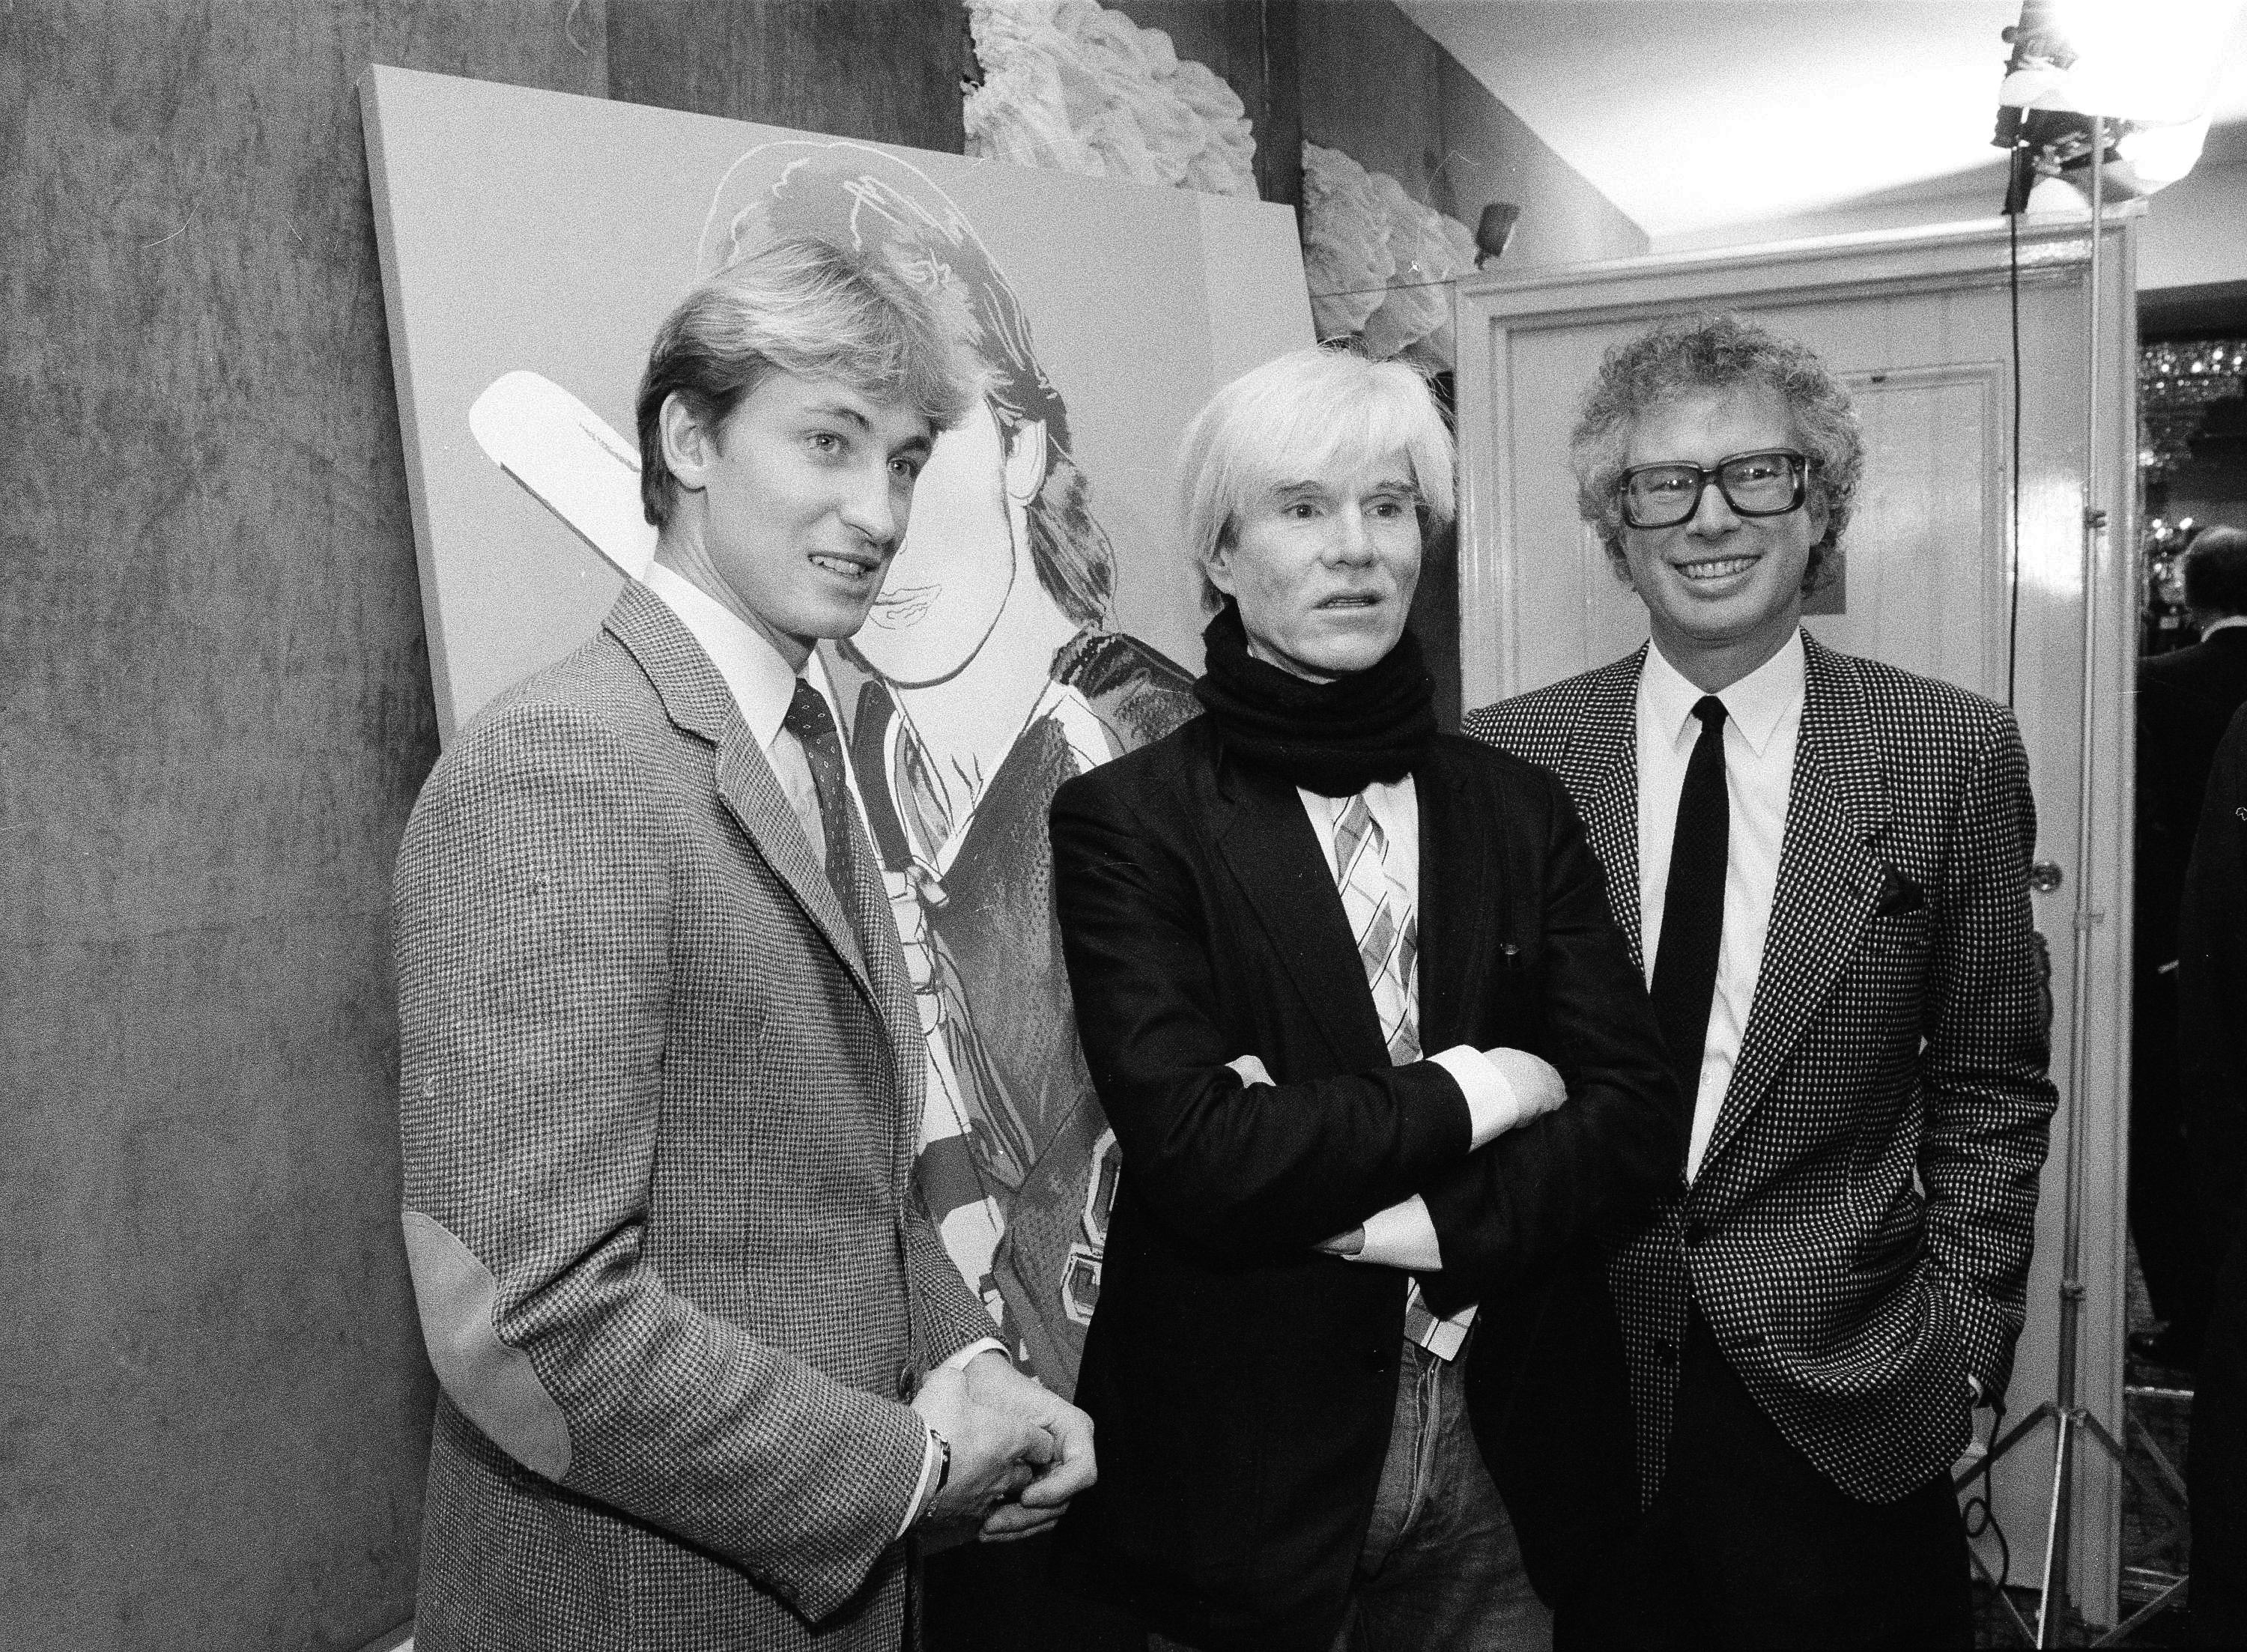 Edmonton Oilers center Wayne Gretzky, left, poses with Andy Warhol and Canadian Ambassador Ken Taylor, after Warhol unveiled his portrait of Gretzky at the St. Moritz Hotel in New York, Dec. 12, 1983. (AP Photo/Mario Suriani)